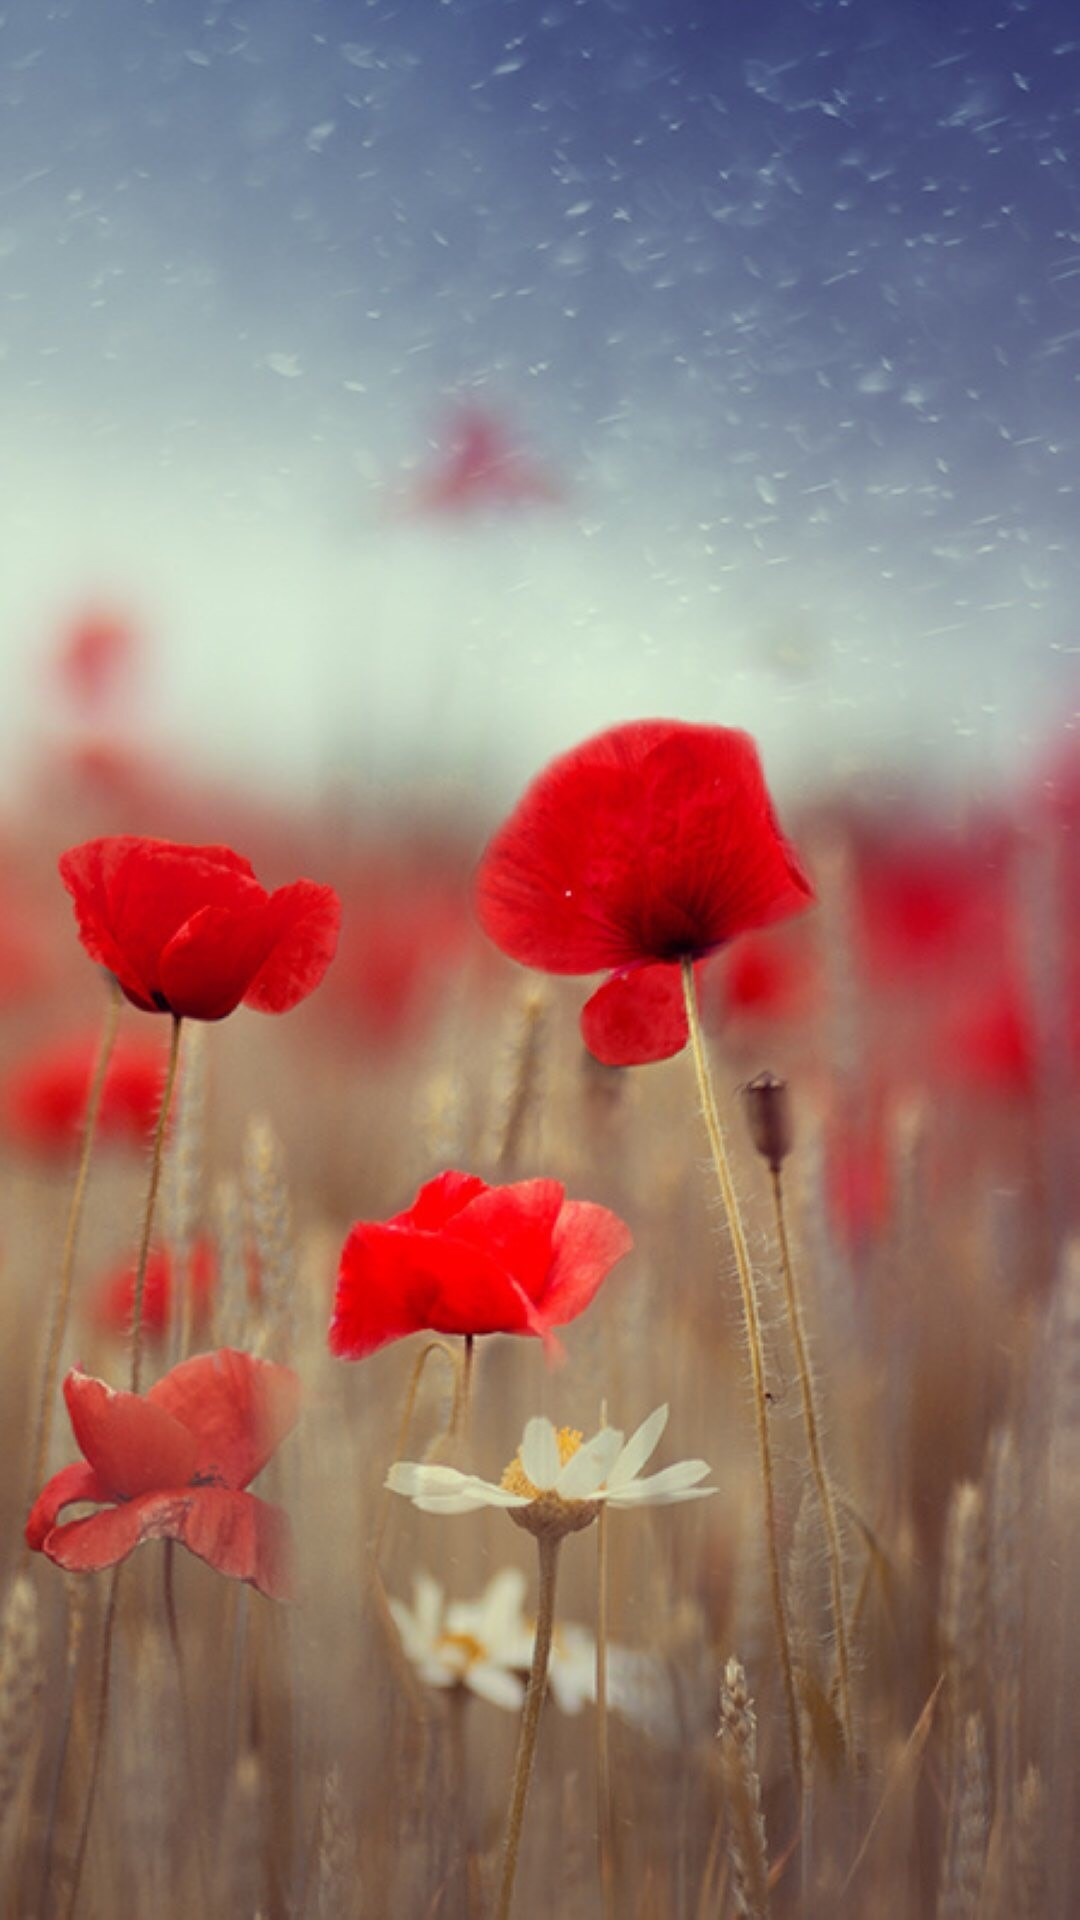 download videos to iphone poppy flower wallpaper 63 images 14029